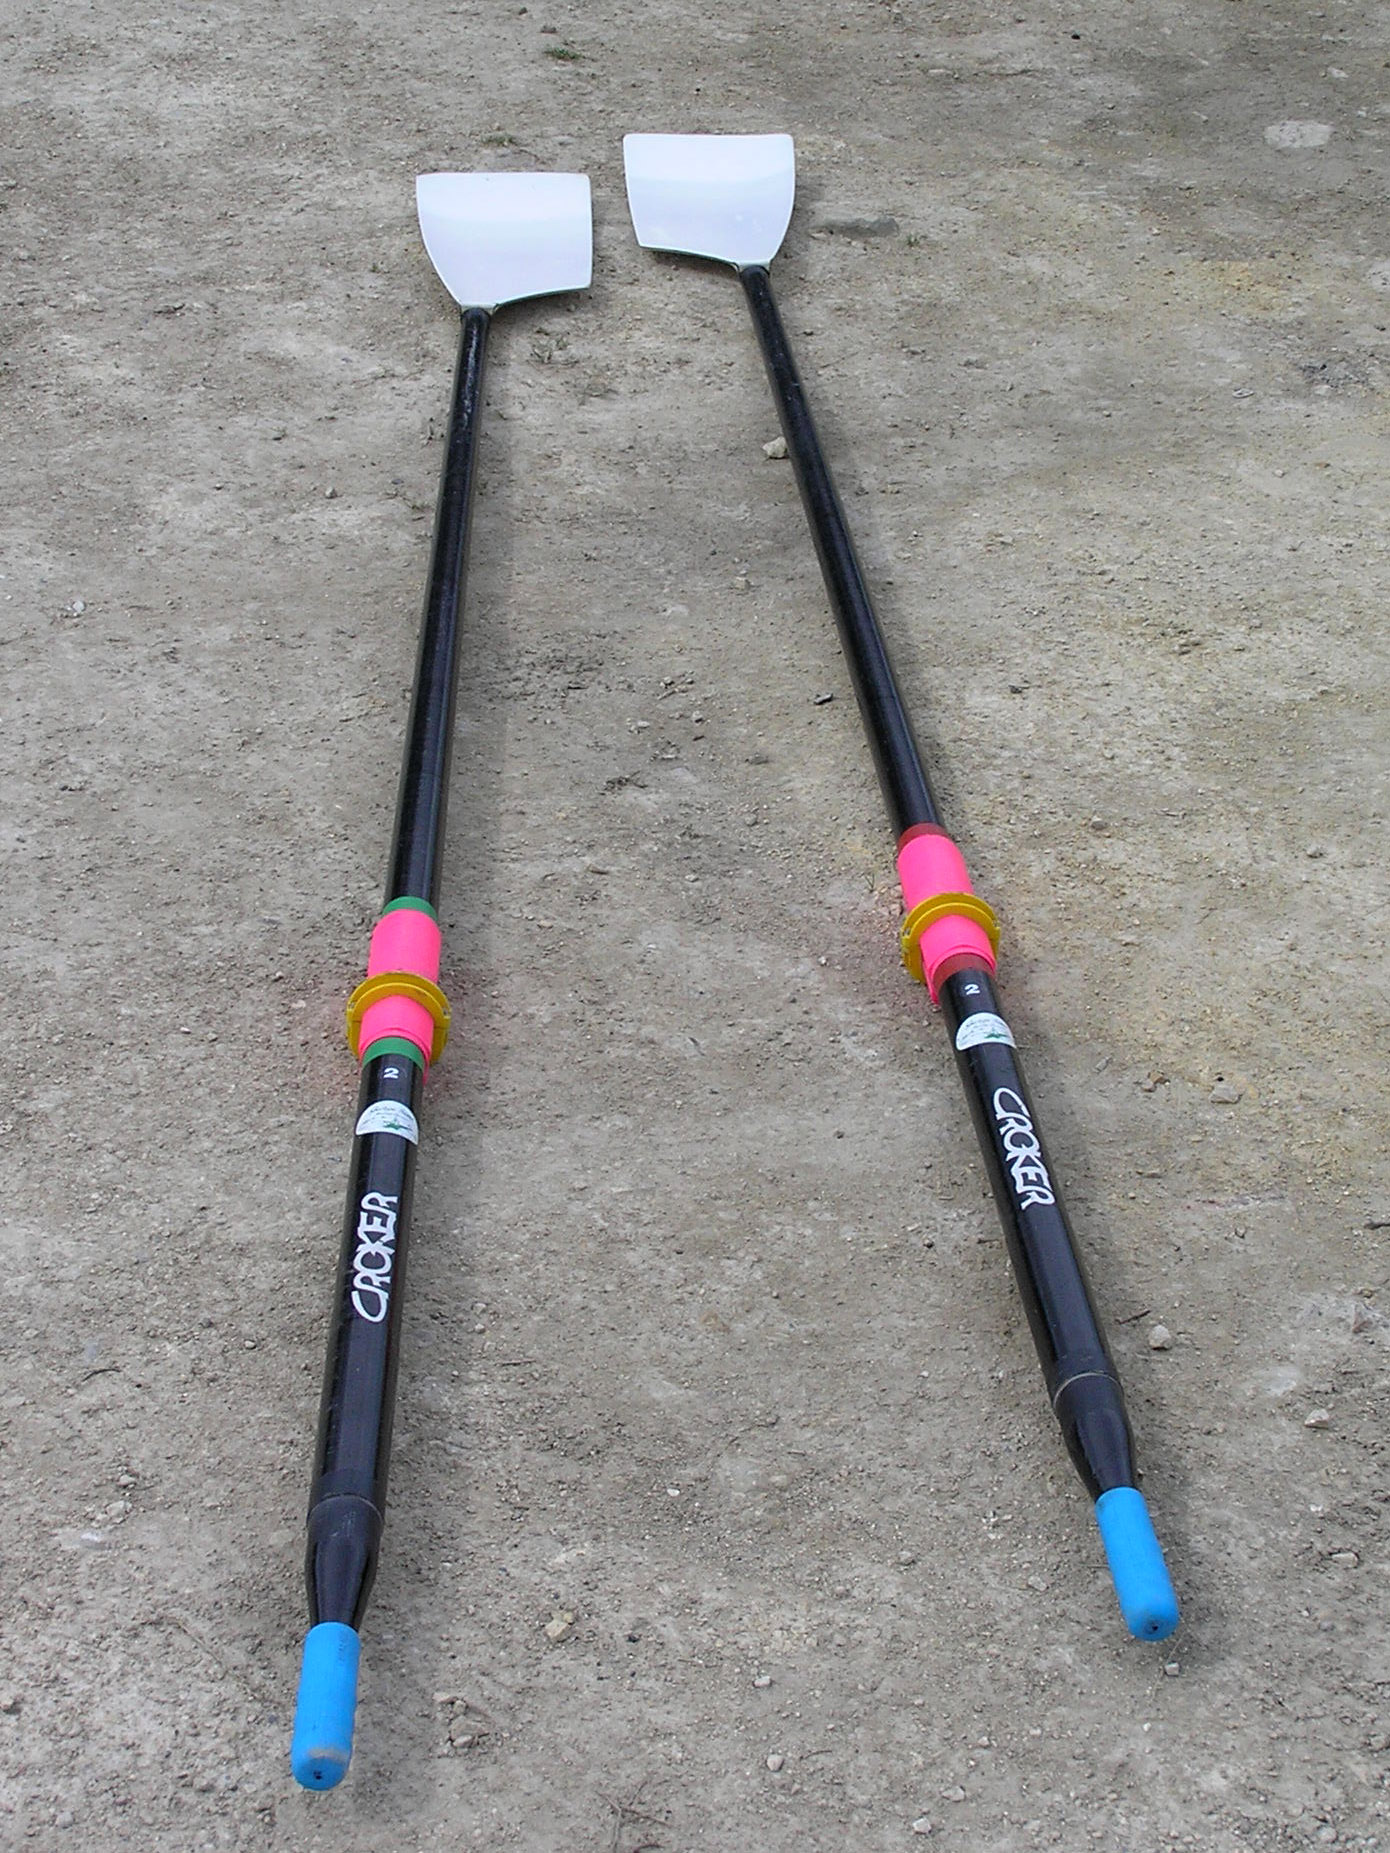 File:Croker Sculling Oars.jpg - Wikipedia, the free encyclopedia